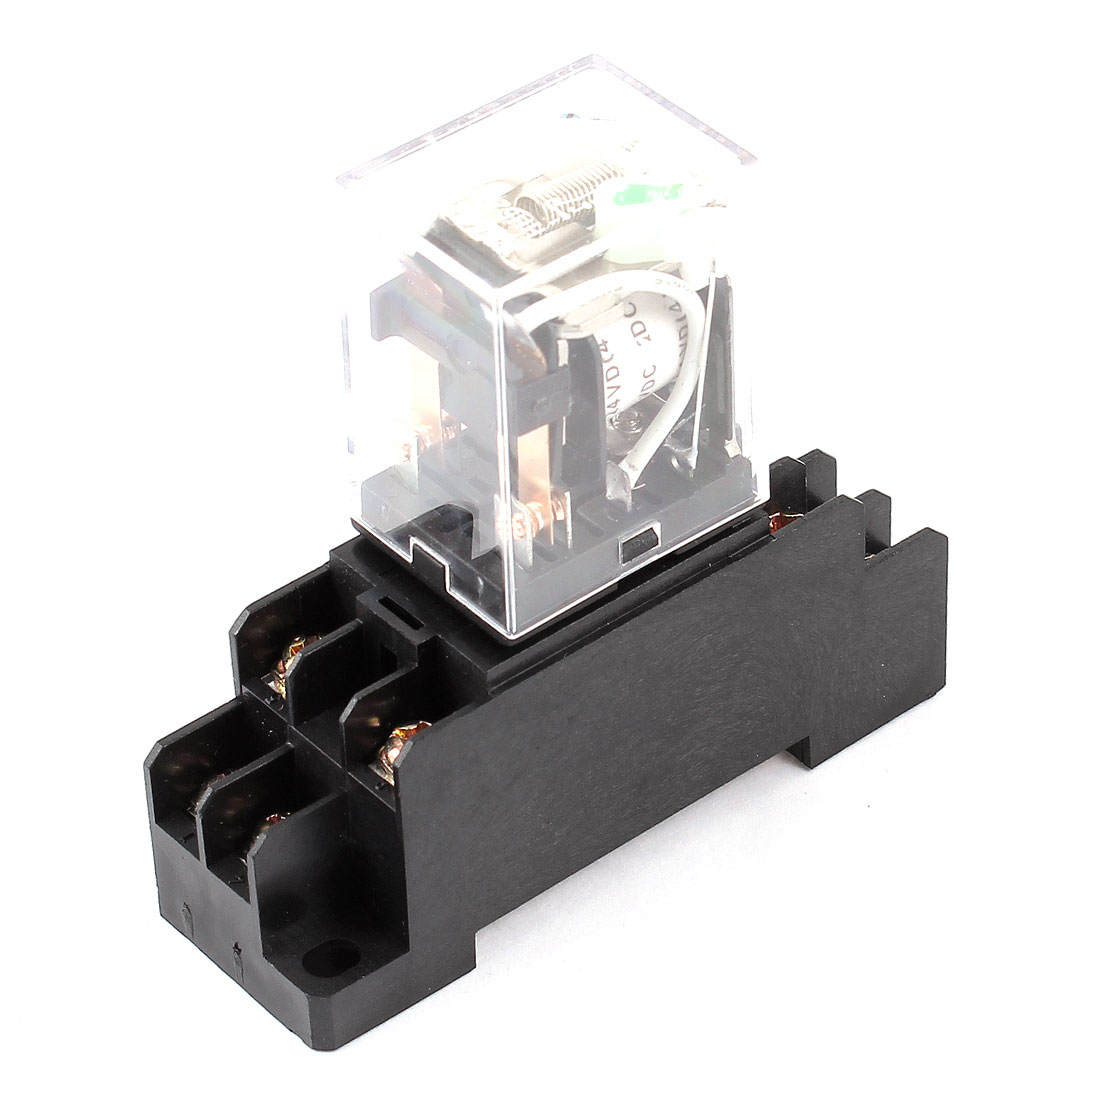 DC 24V Coil 35mm DIN Rail Mount DPDT Plug-in Socket Power Relay HH52PL